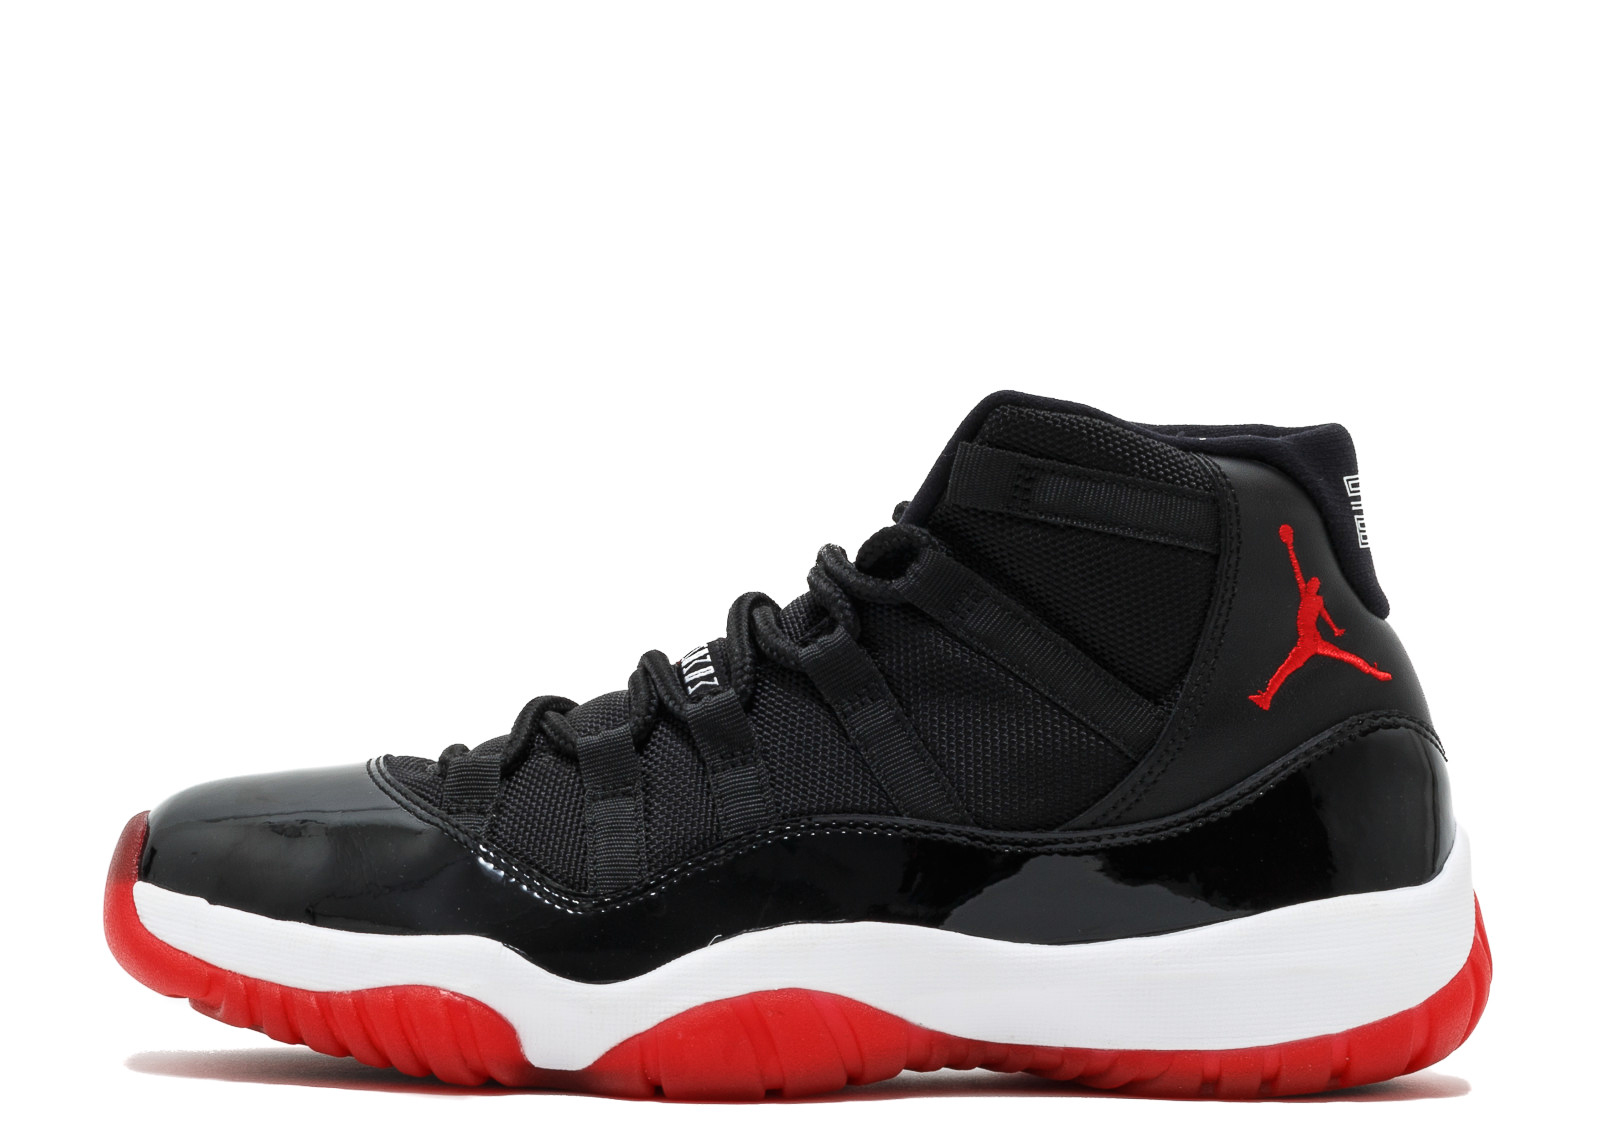 Air Jordan 11 Retro 'Bred' 2012 378037 010